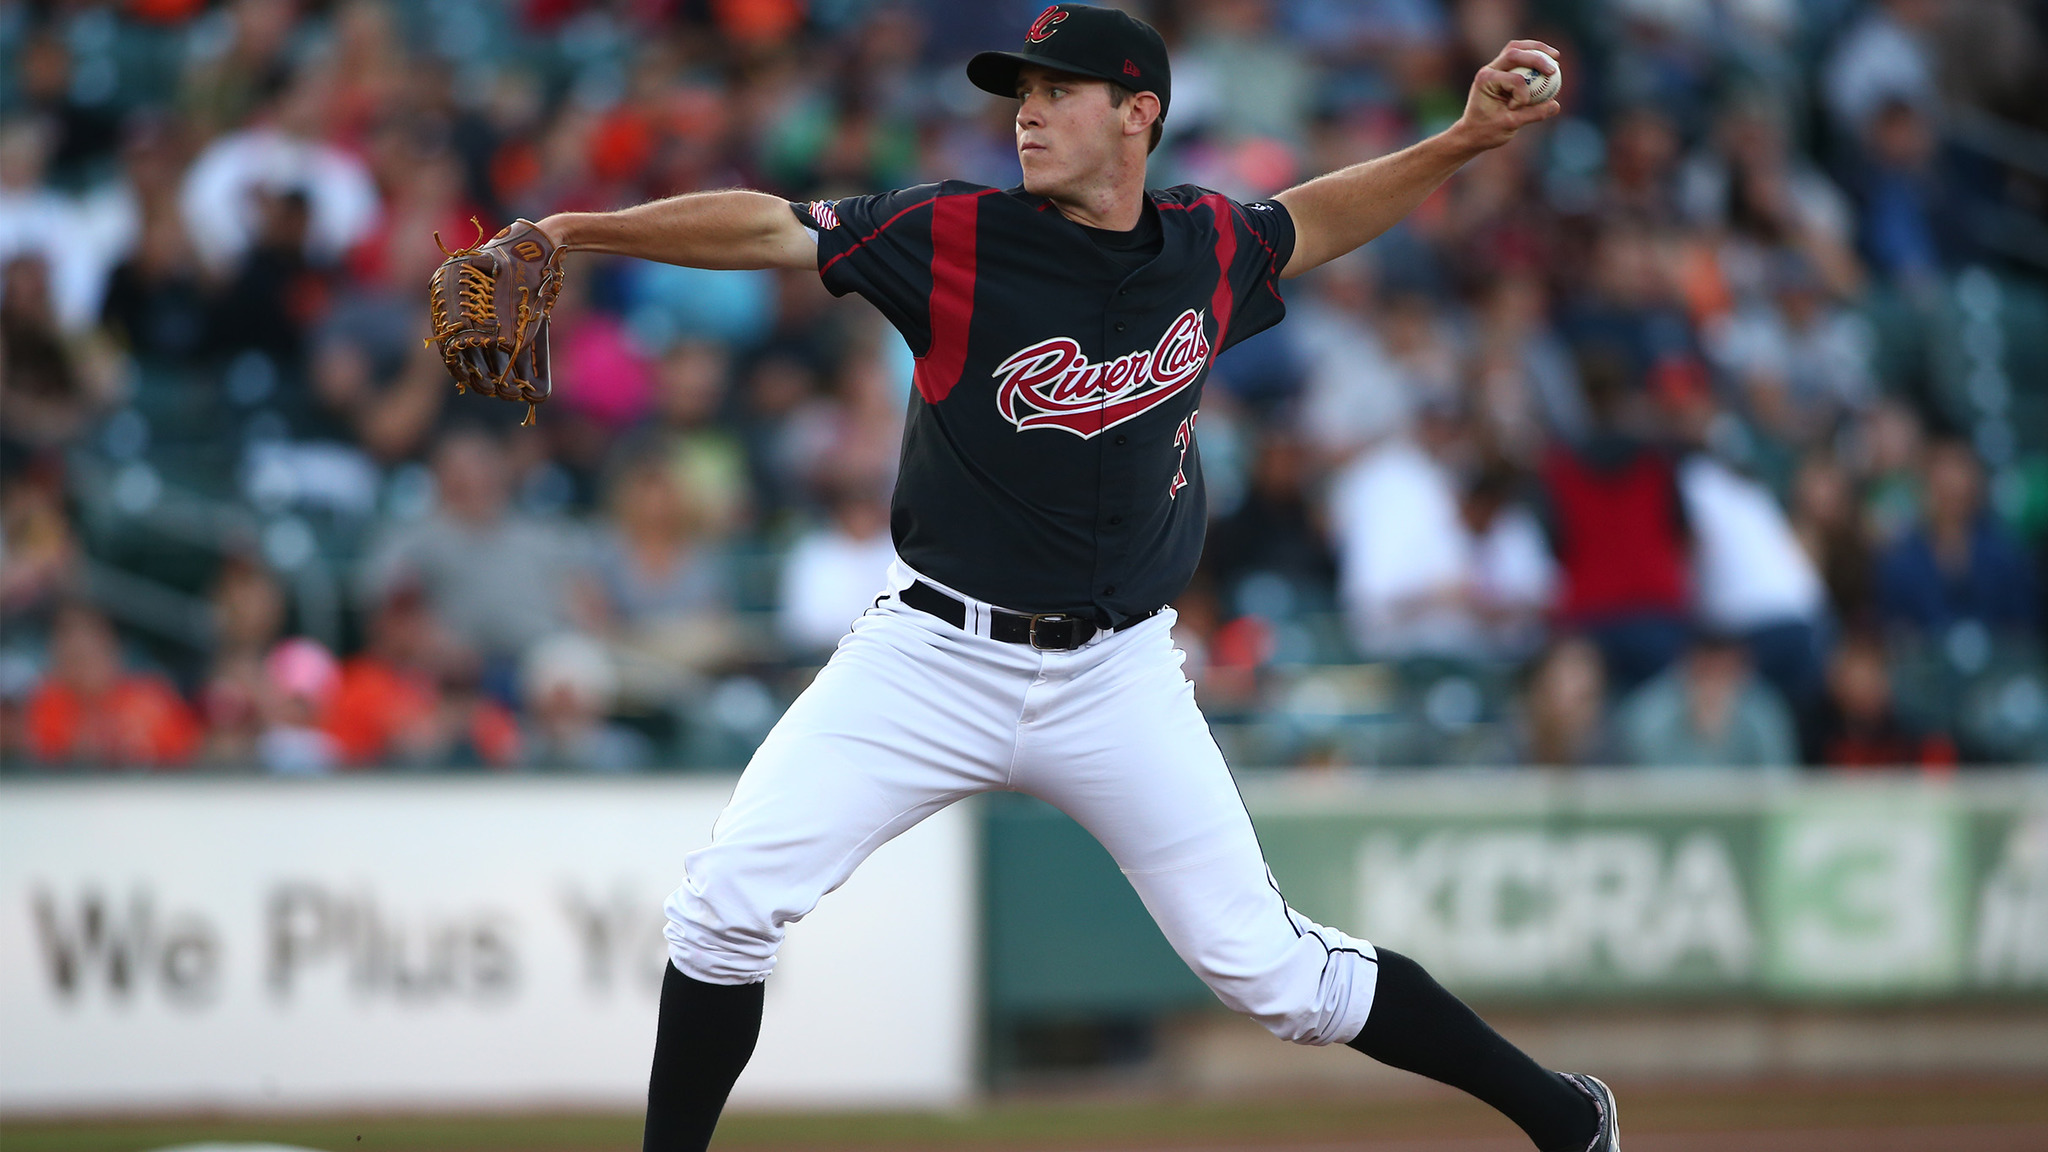 Sacramento River Cats vs. Reno Aces